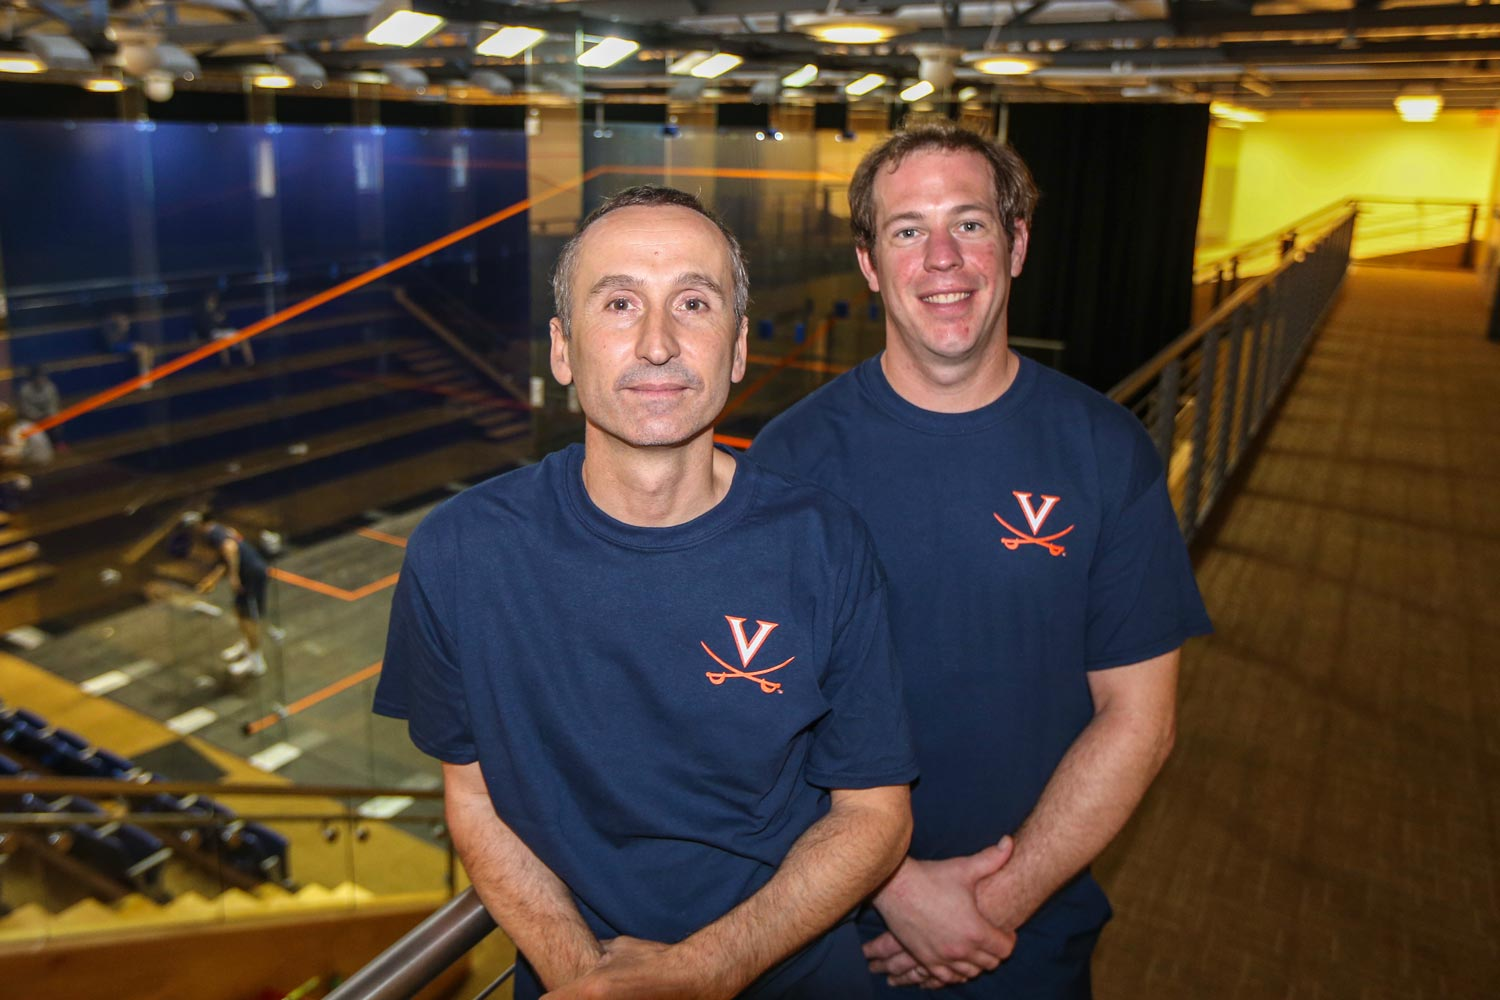 Head coach Mark Allen, left, and assistant Grant White wlll lead both the men's and women's programs. (UVA Athletics photo)